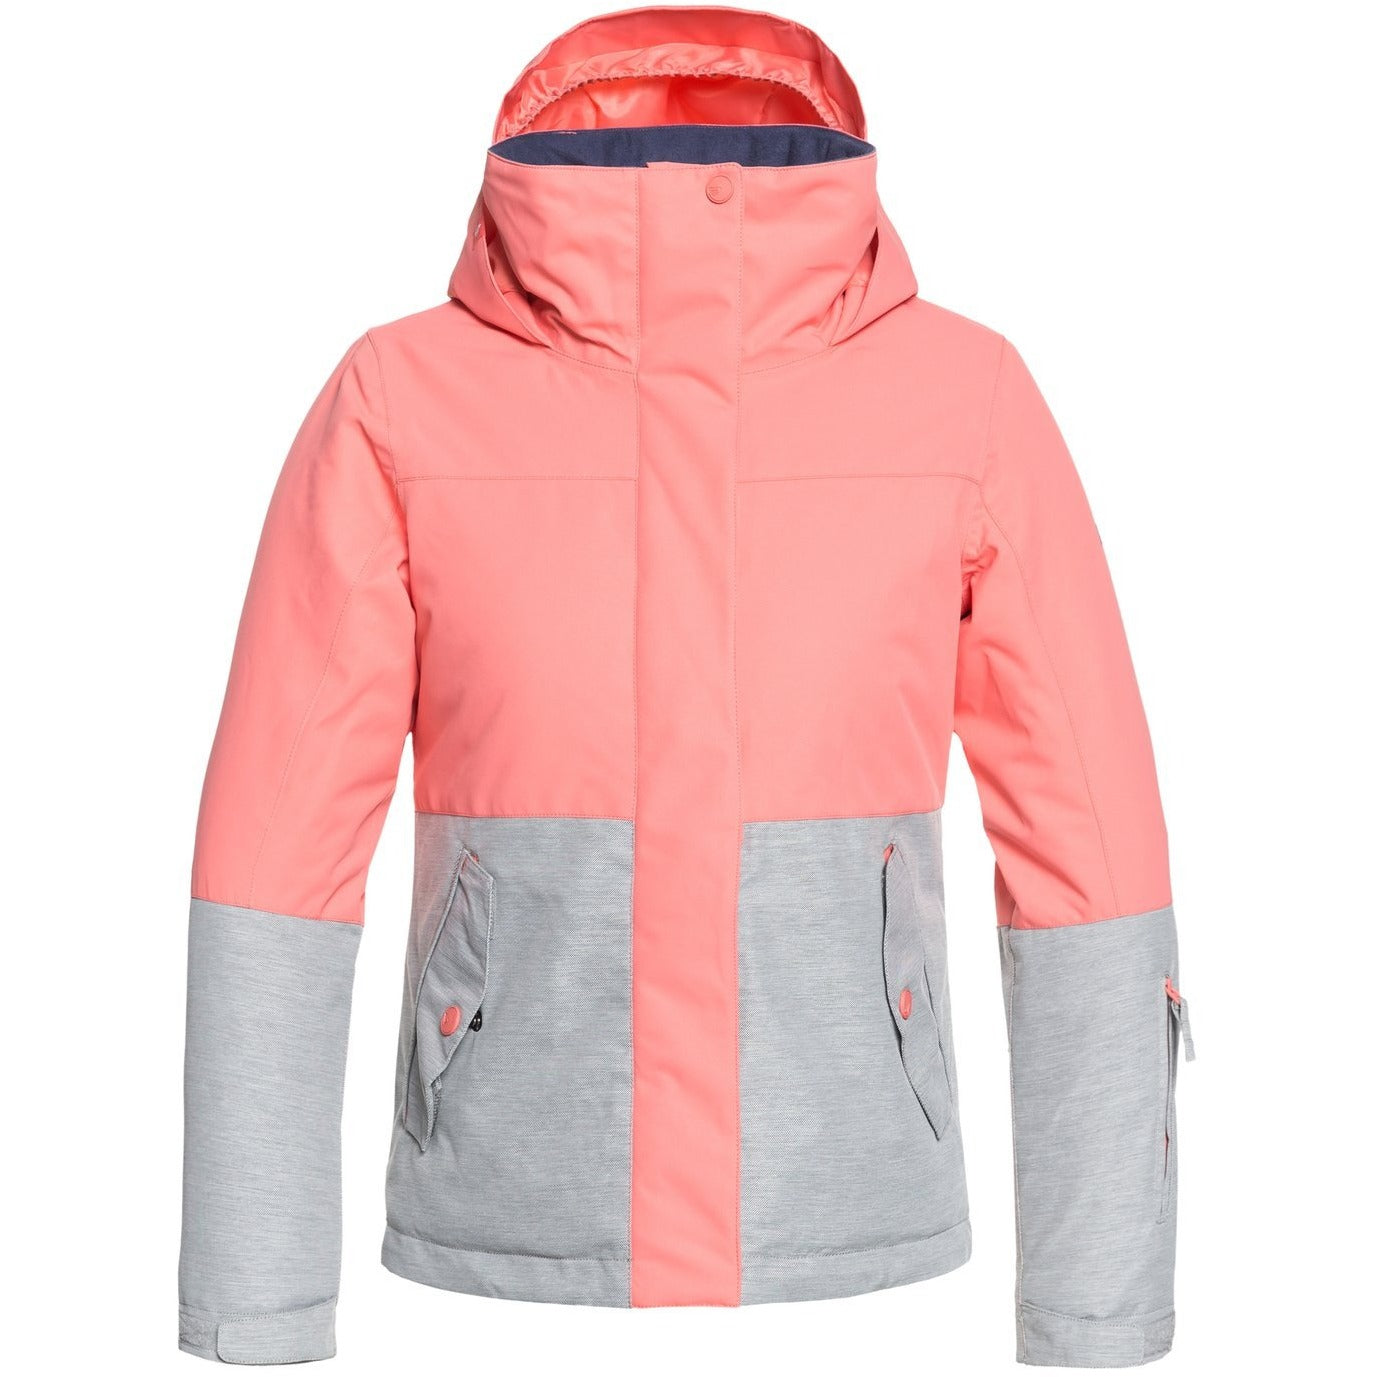 Roxy Young Girls Jetty Block Snow Jacket - 88 Gear